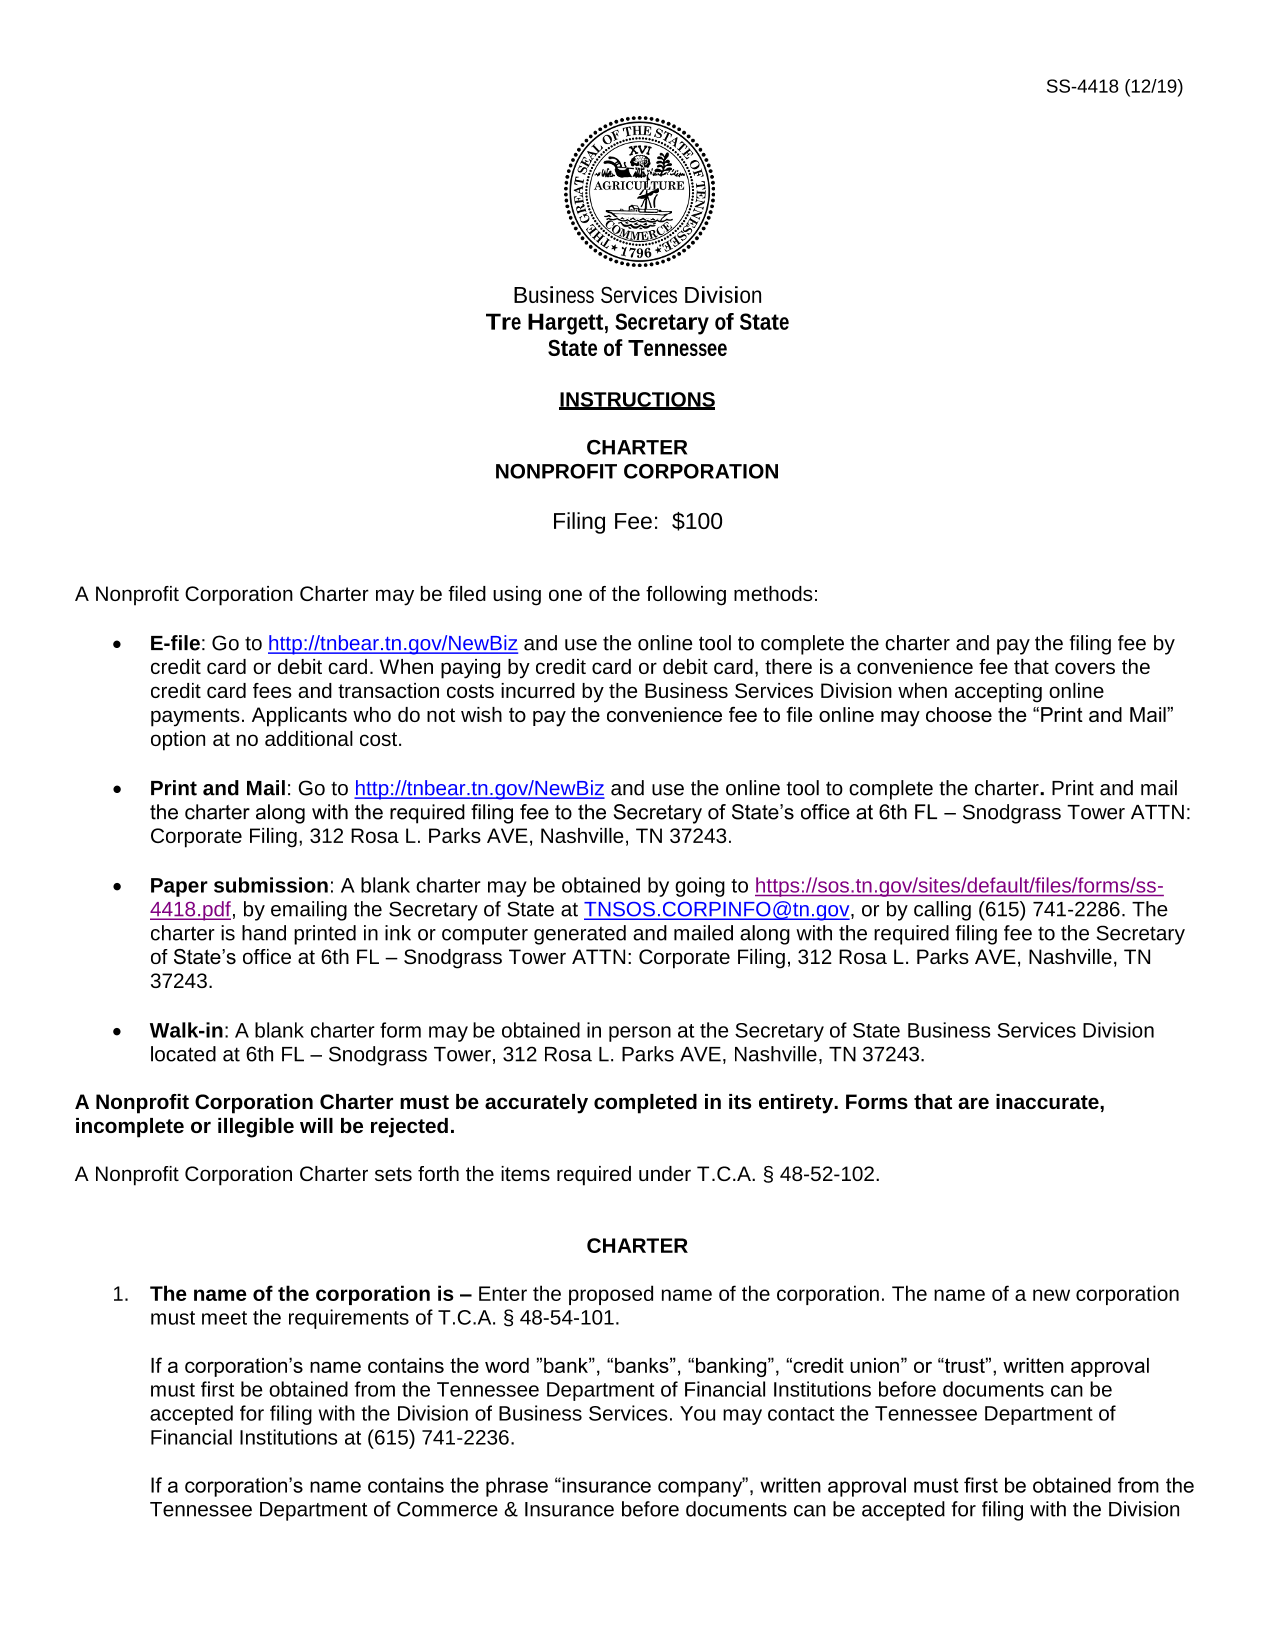 Tennessee Nonprofit Corporation Charter